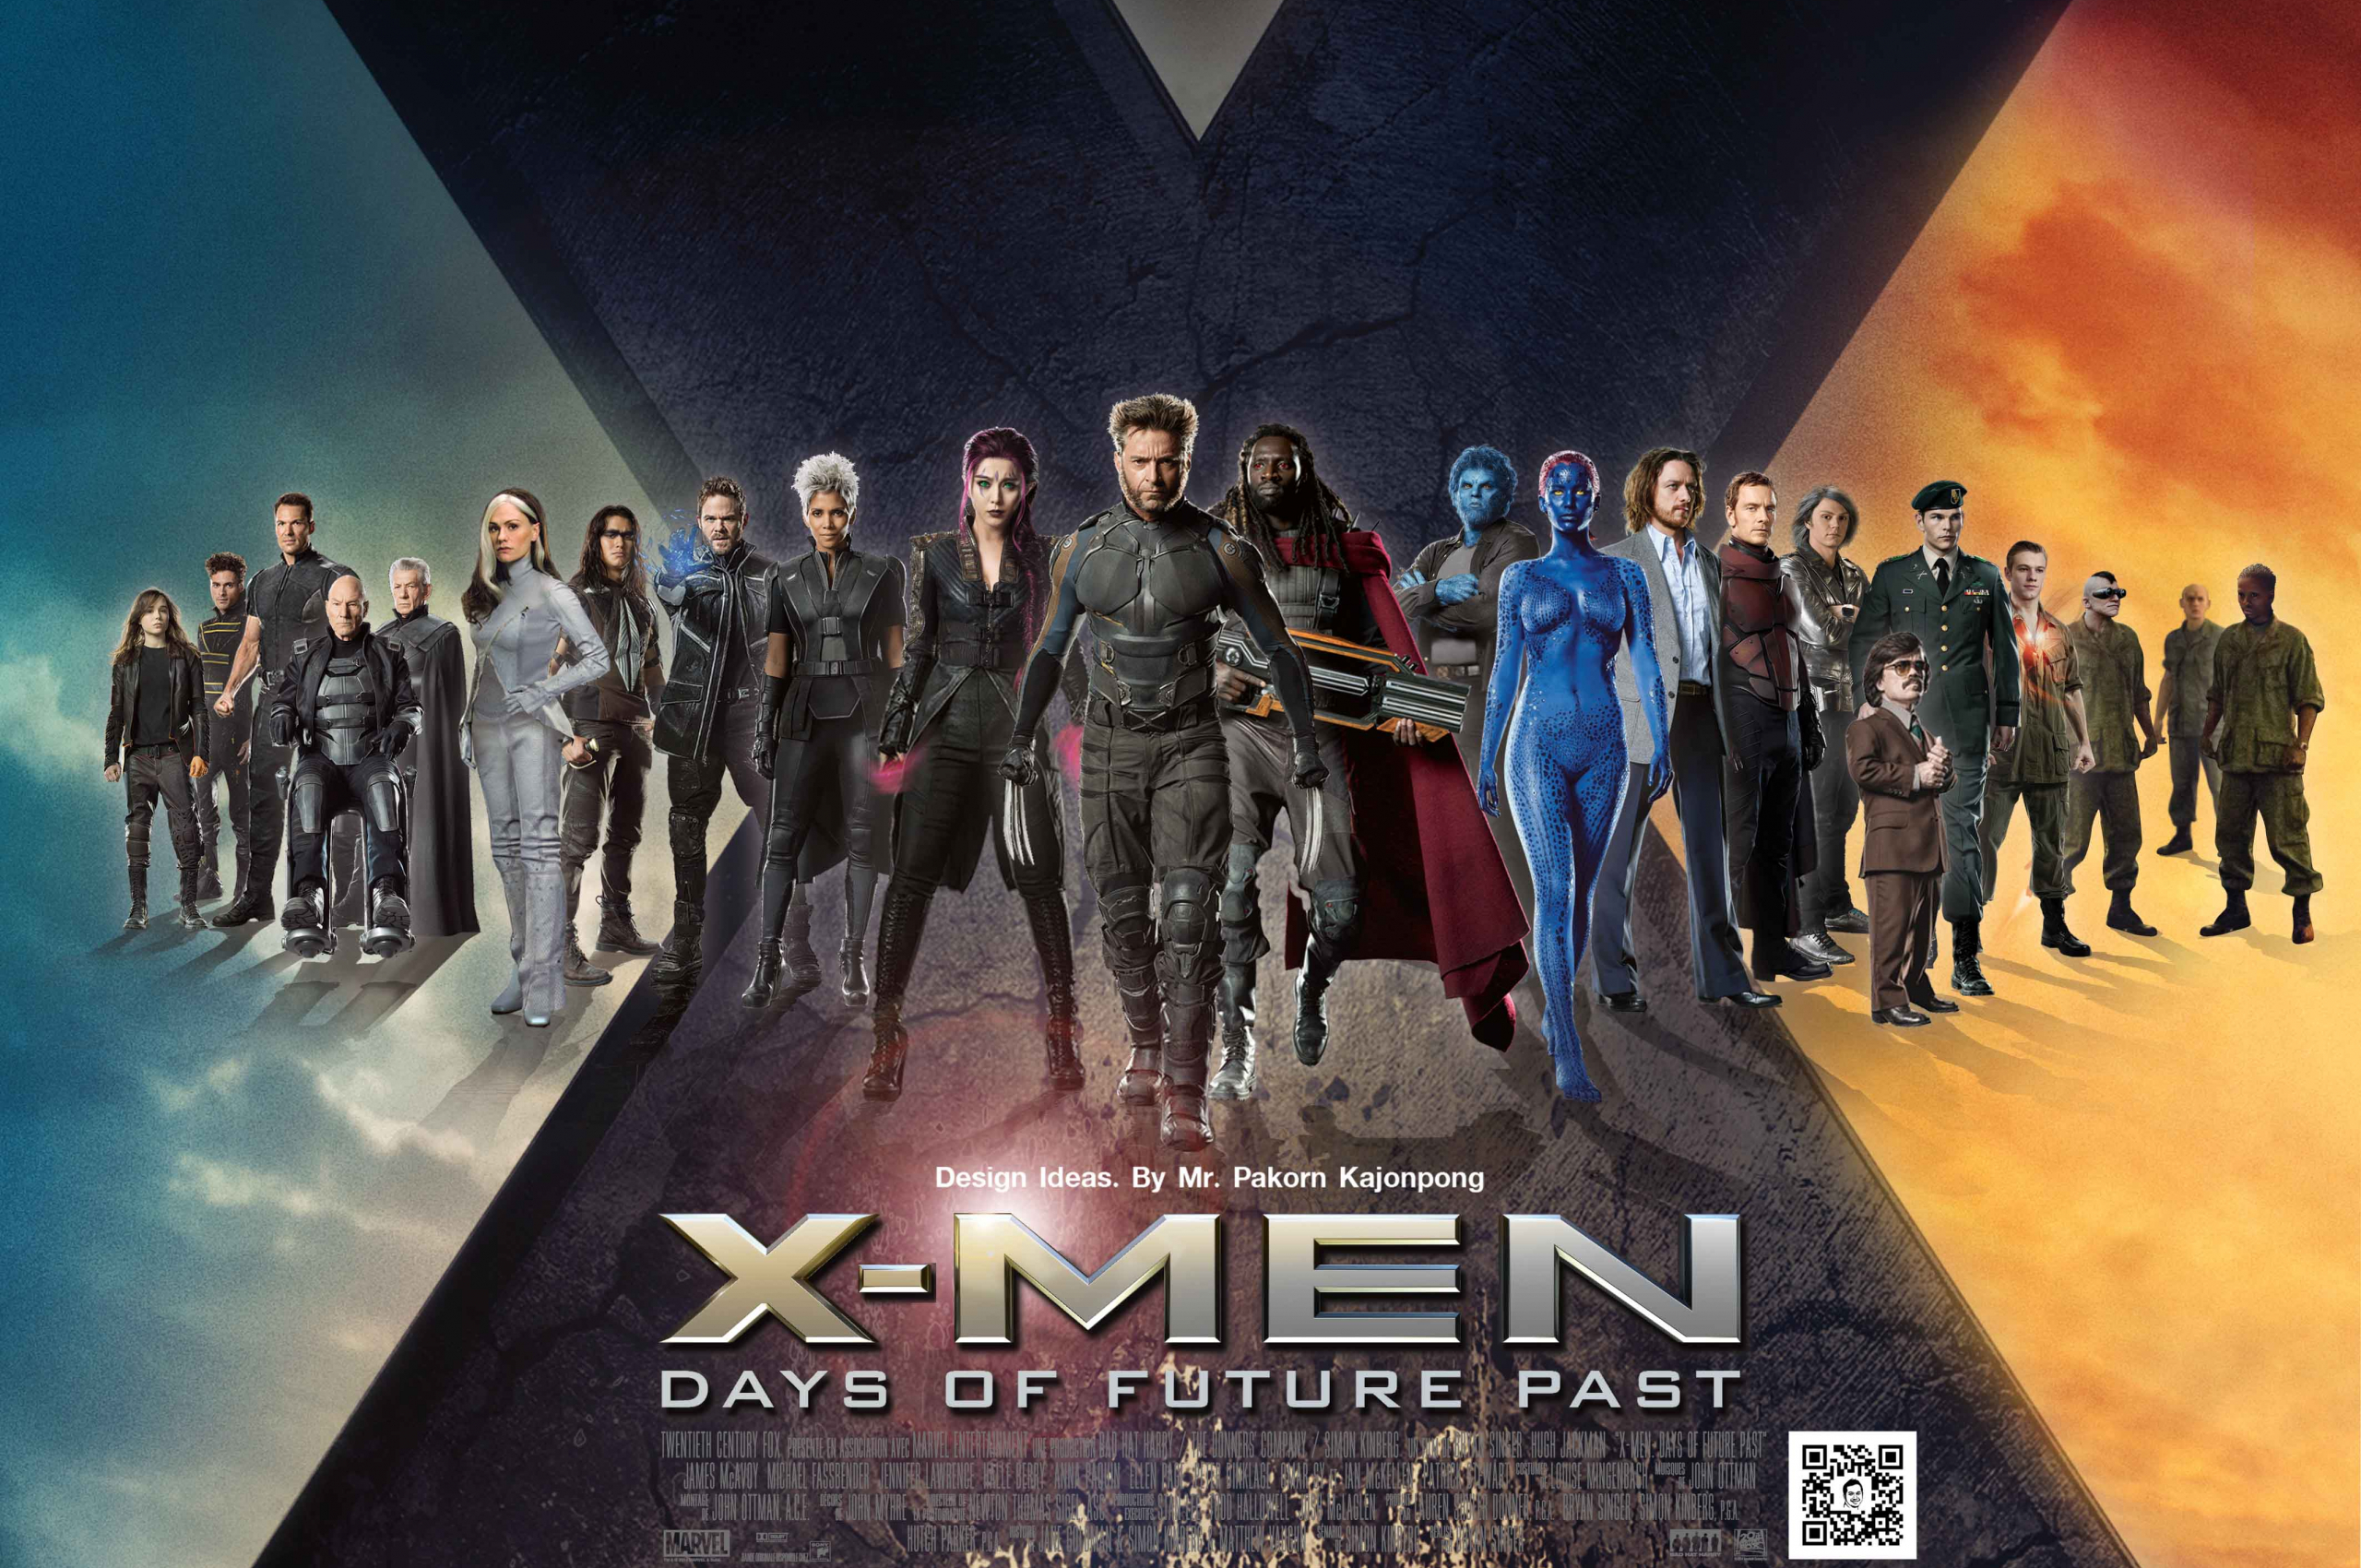 Free Download X Men Days Of Future Past Wallpaper 4252x2917 For